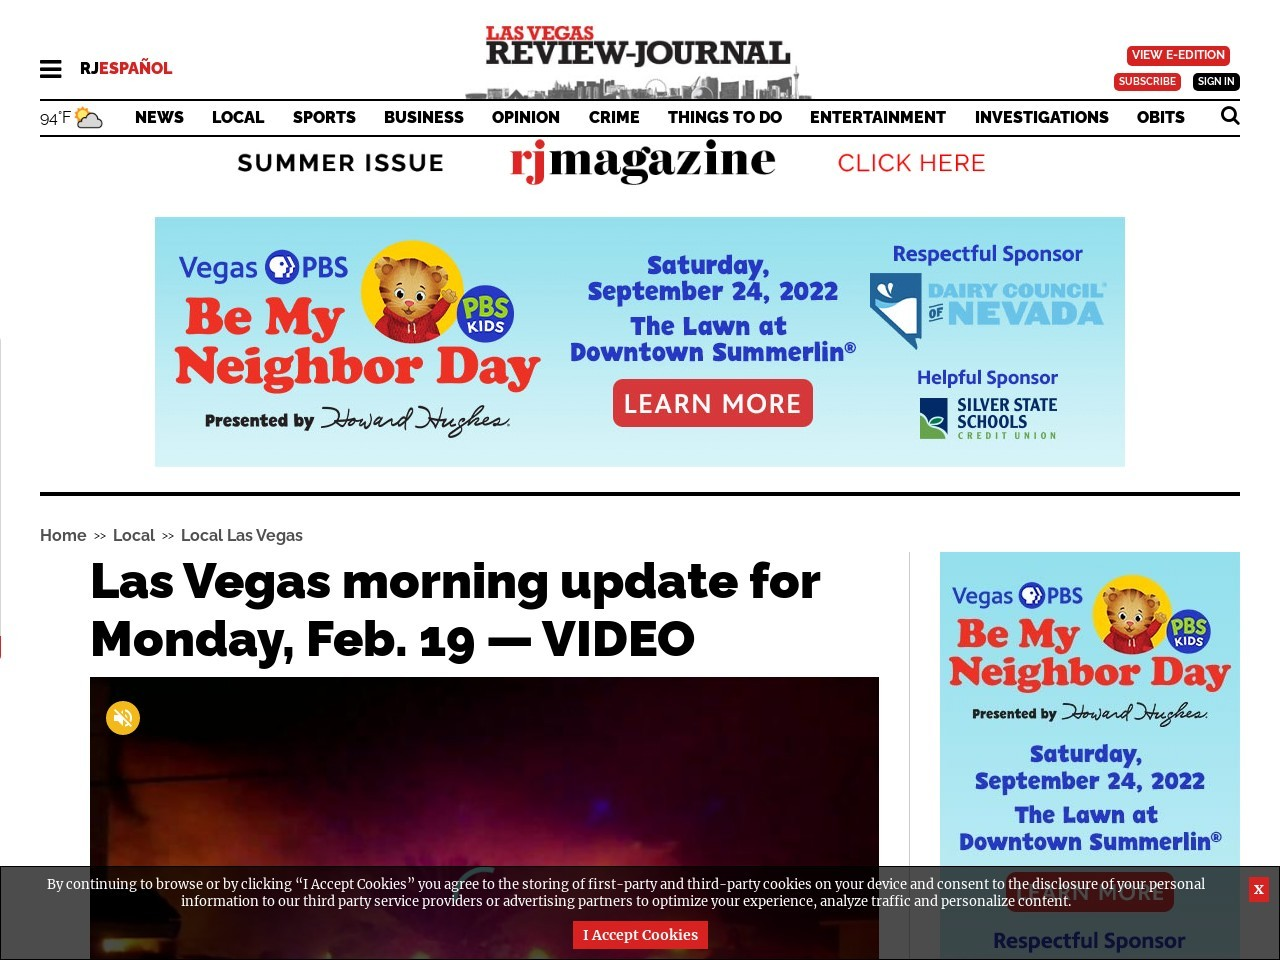 Las Vegas morning update for Monday, Feb. 19 — VIDEO